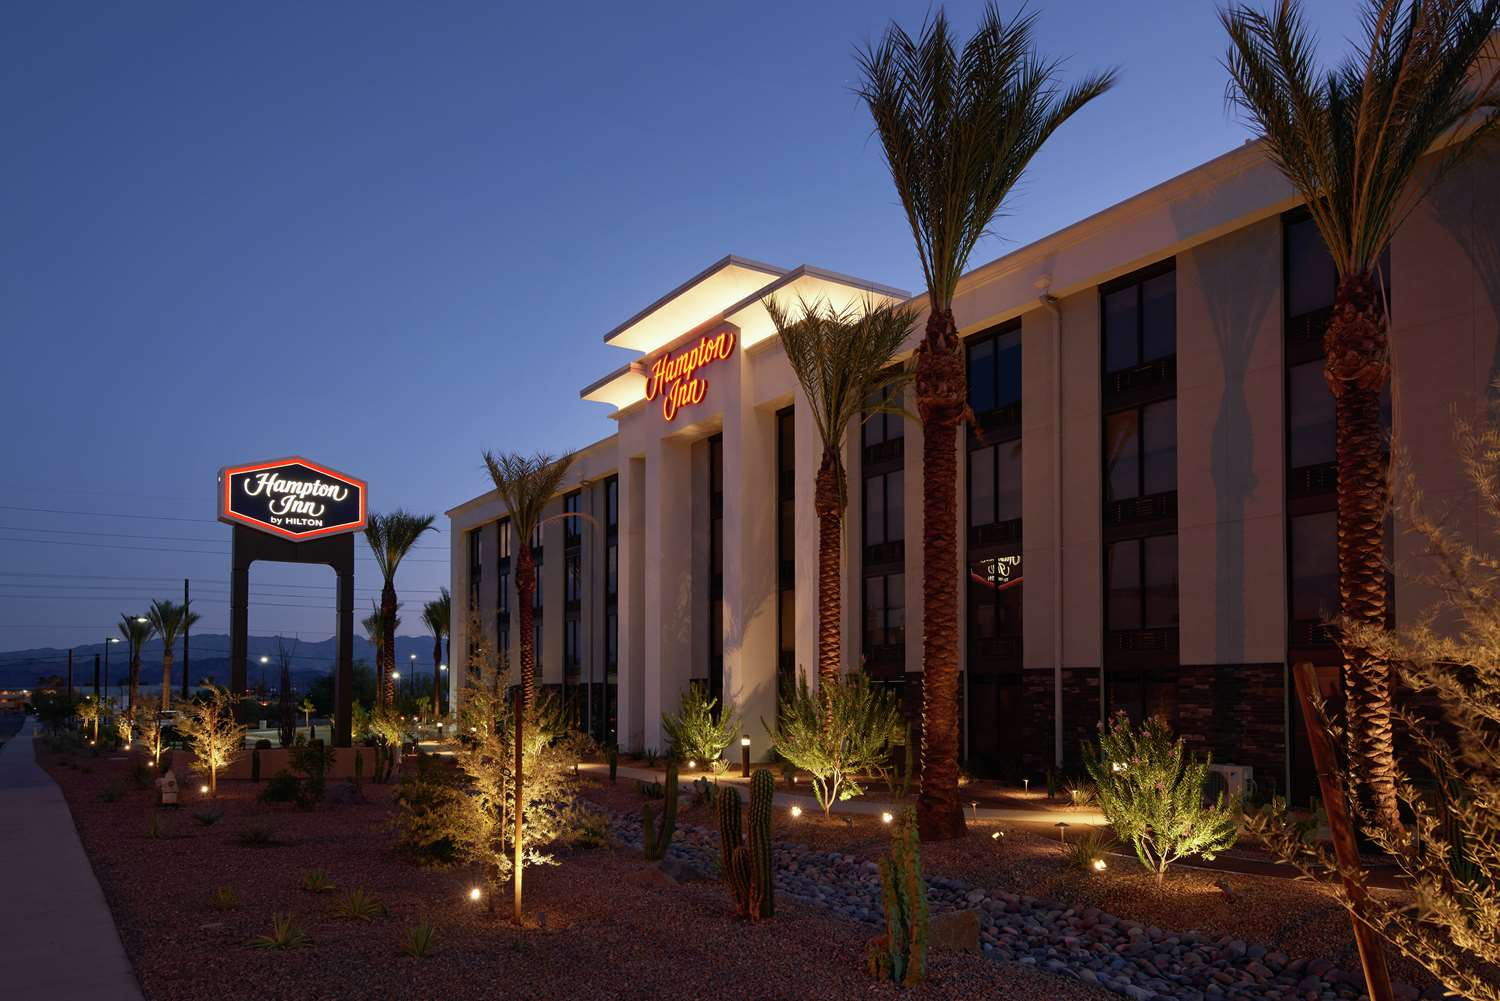 Hampton Inn Lake Havasu City